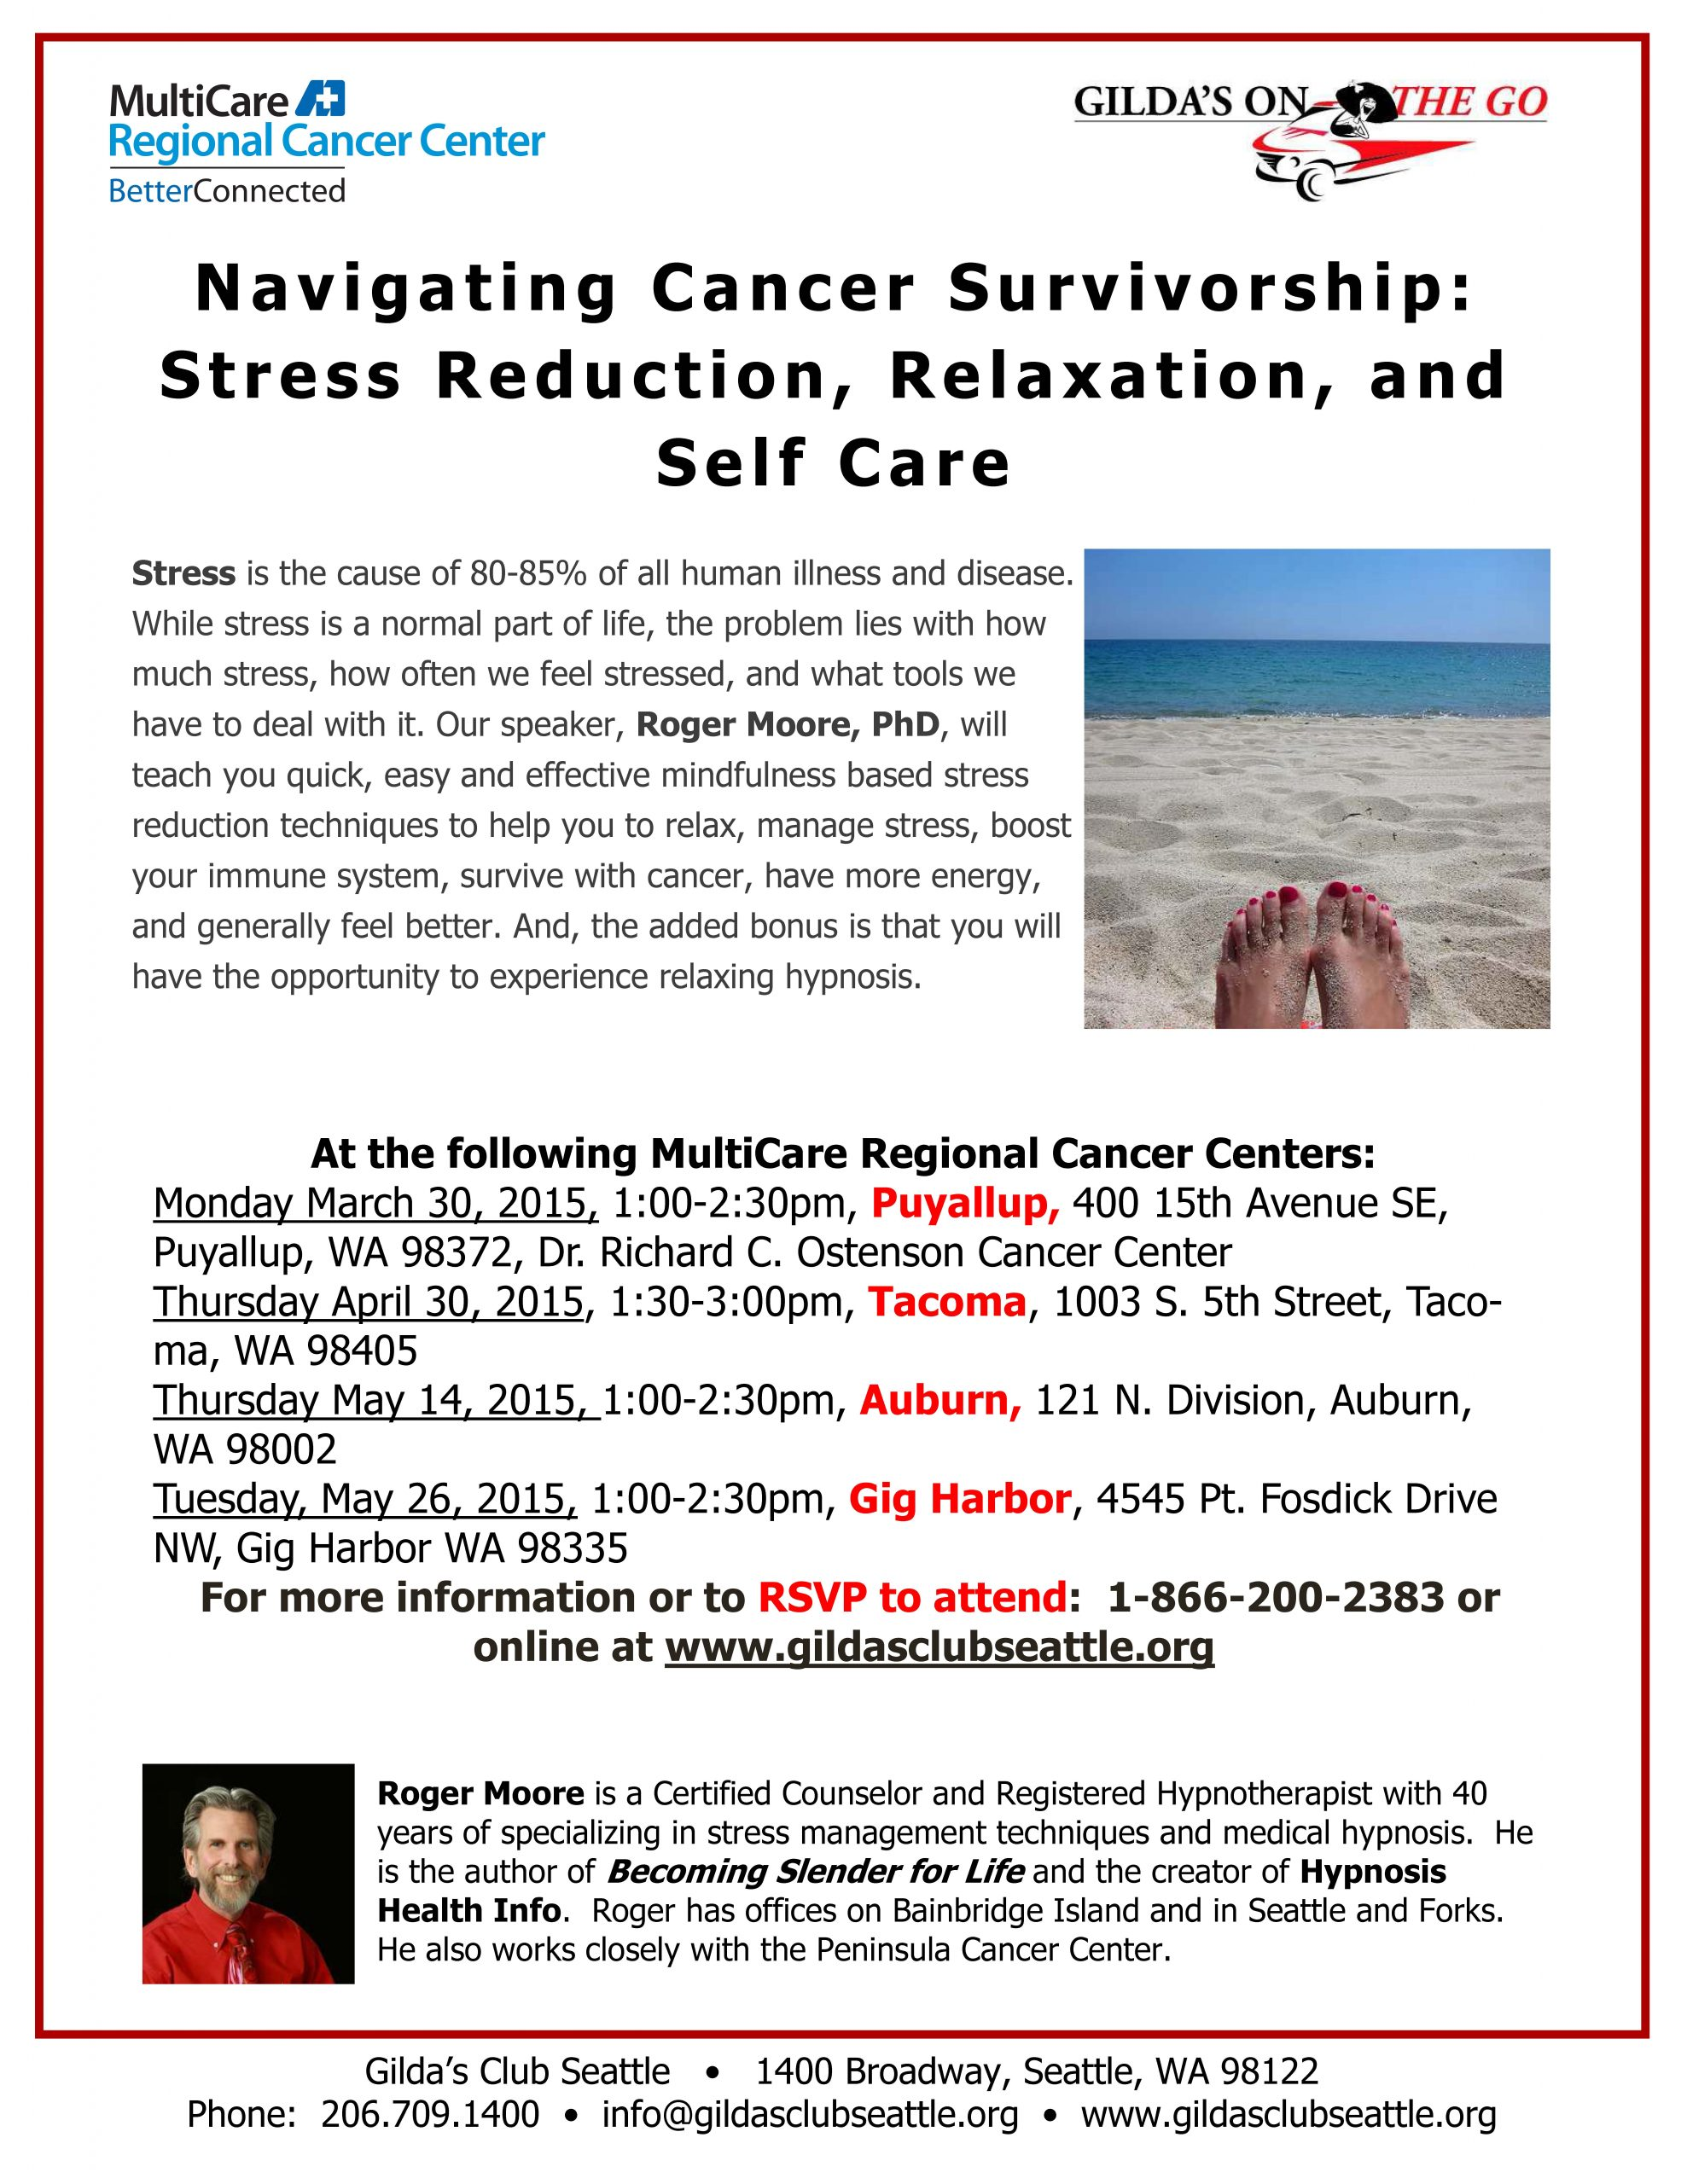 Navigating Cancer Survivorship: Stress Reduction, Relaxation, and Self Care